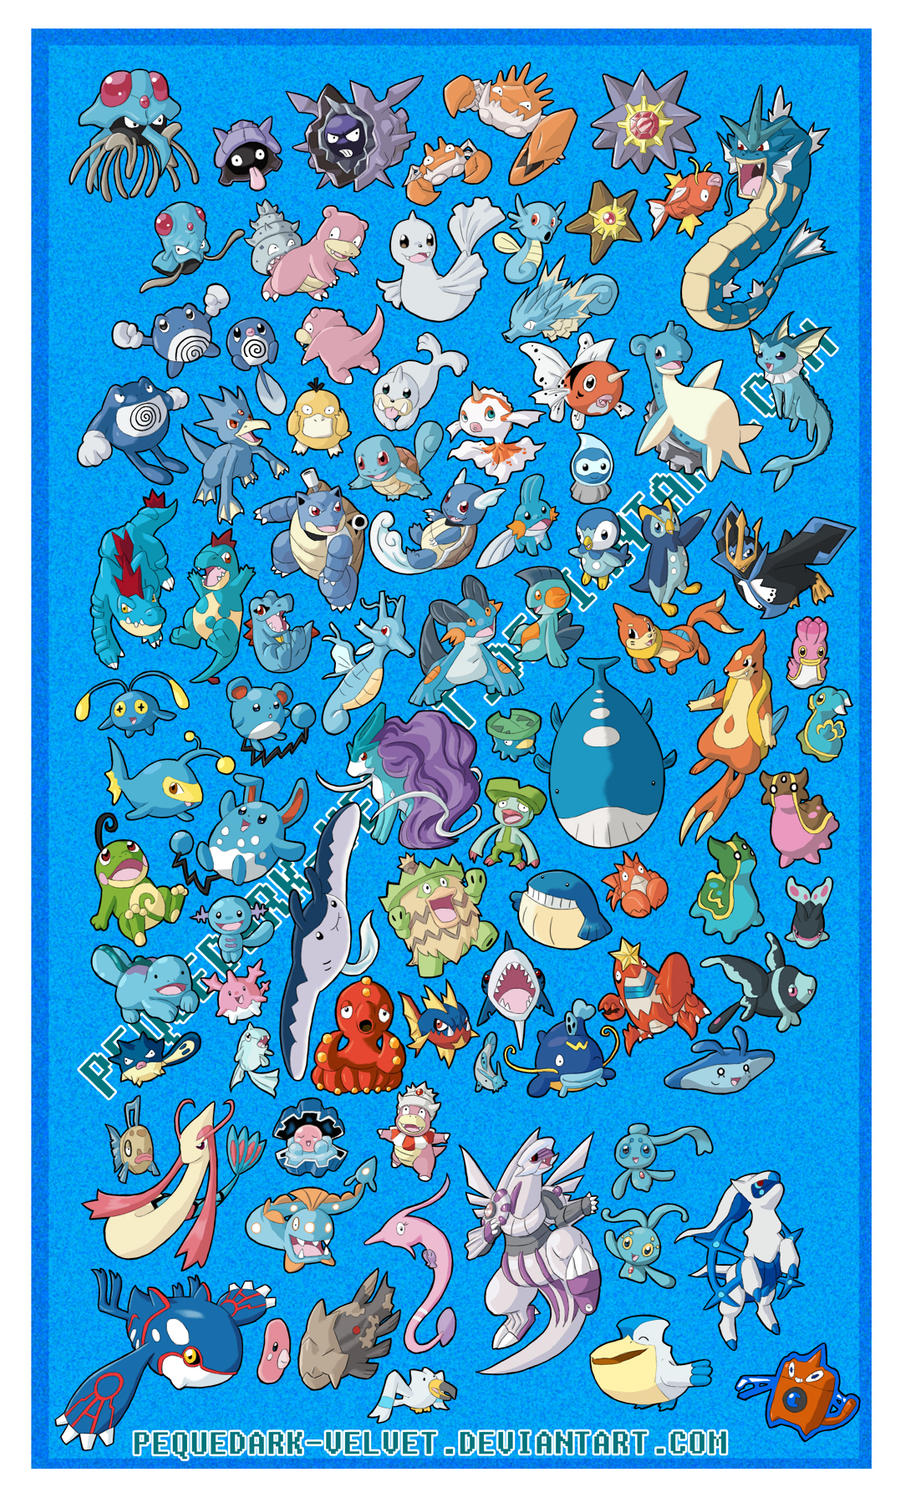 CHIBI POKEMON STICKERS: WATER by PEQUEDARK-VELVET on DeviantArt Wailmer Pokemon